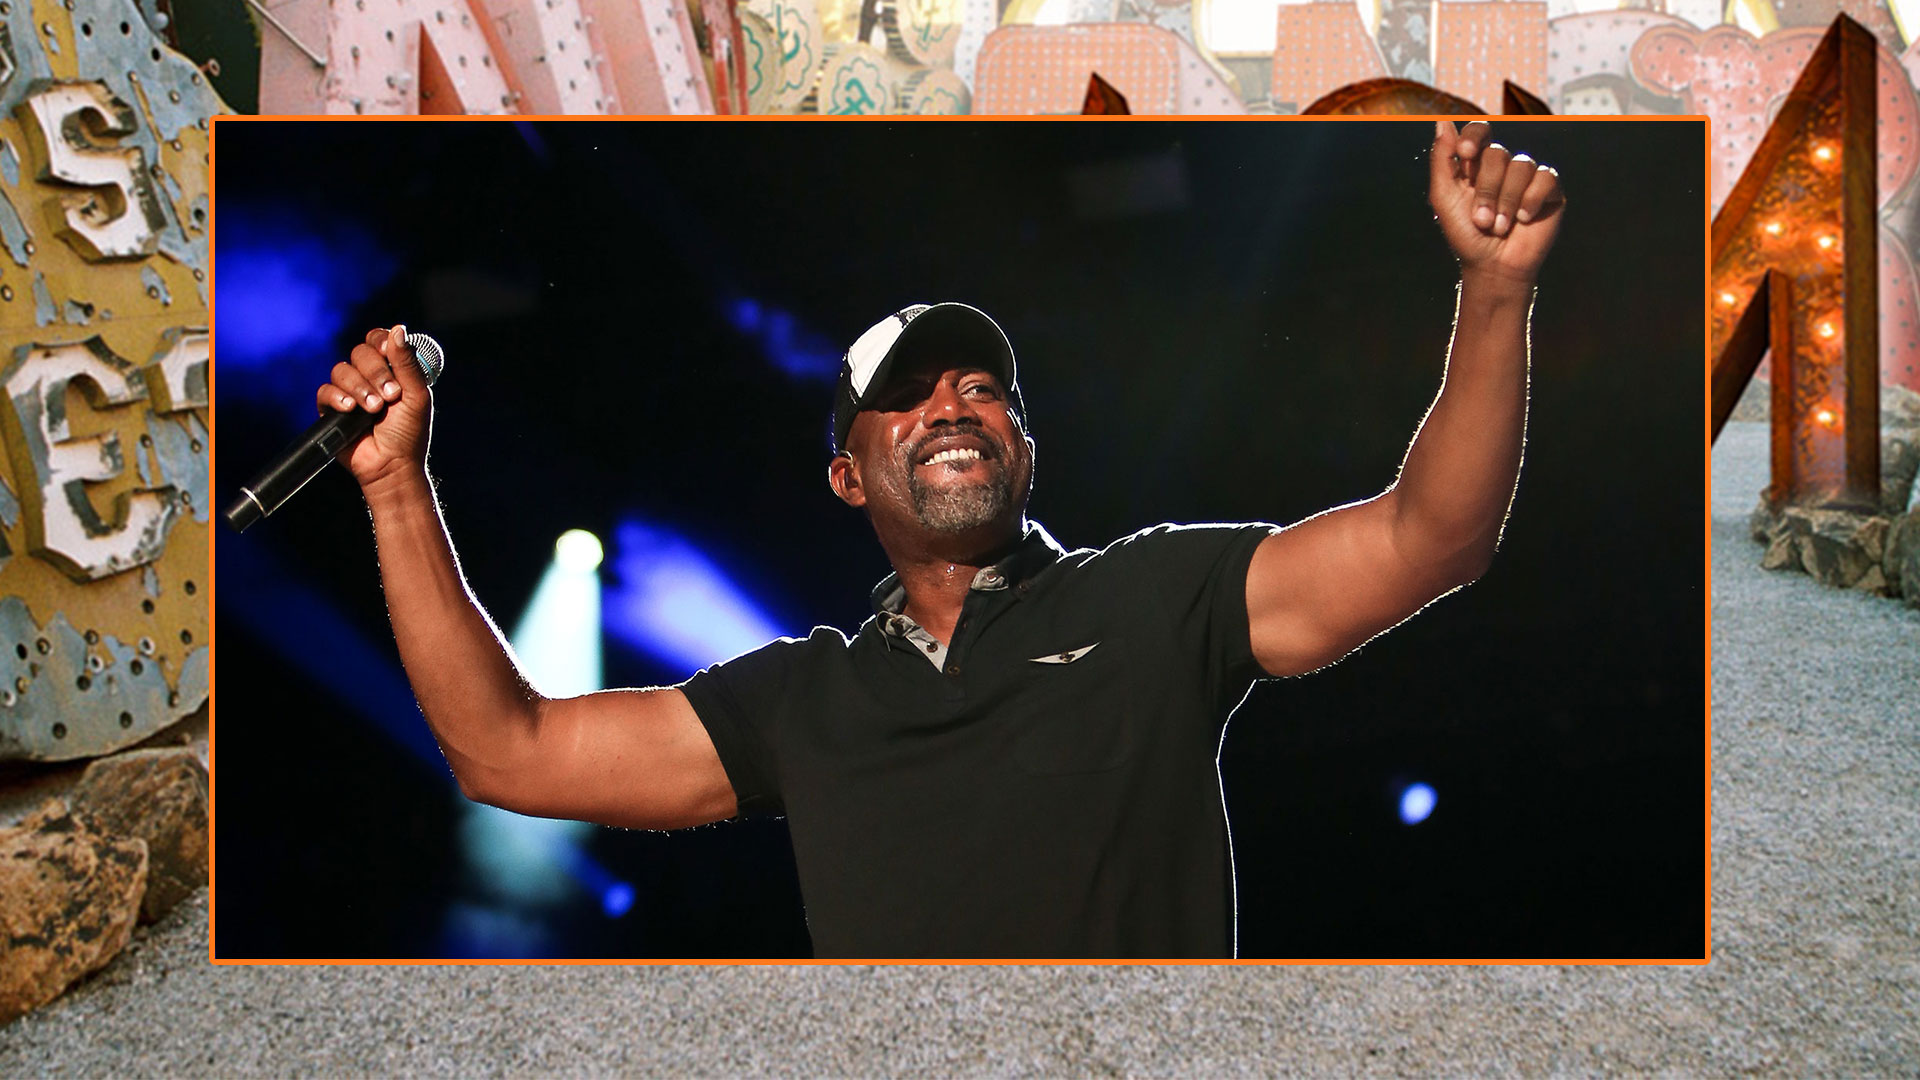 Darius Rucker's goatee is more than just